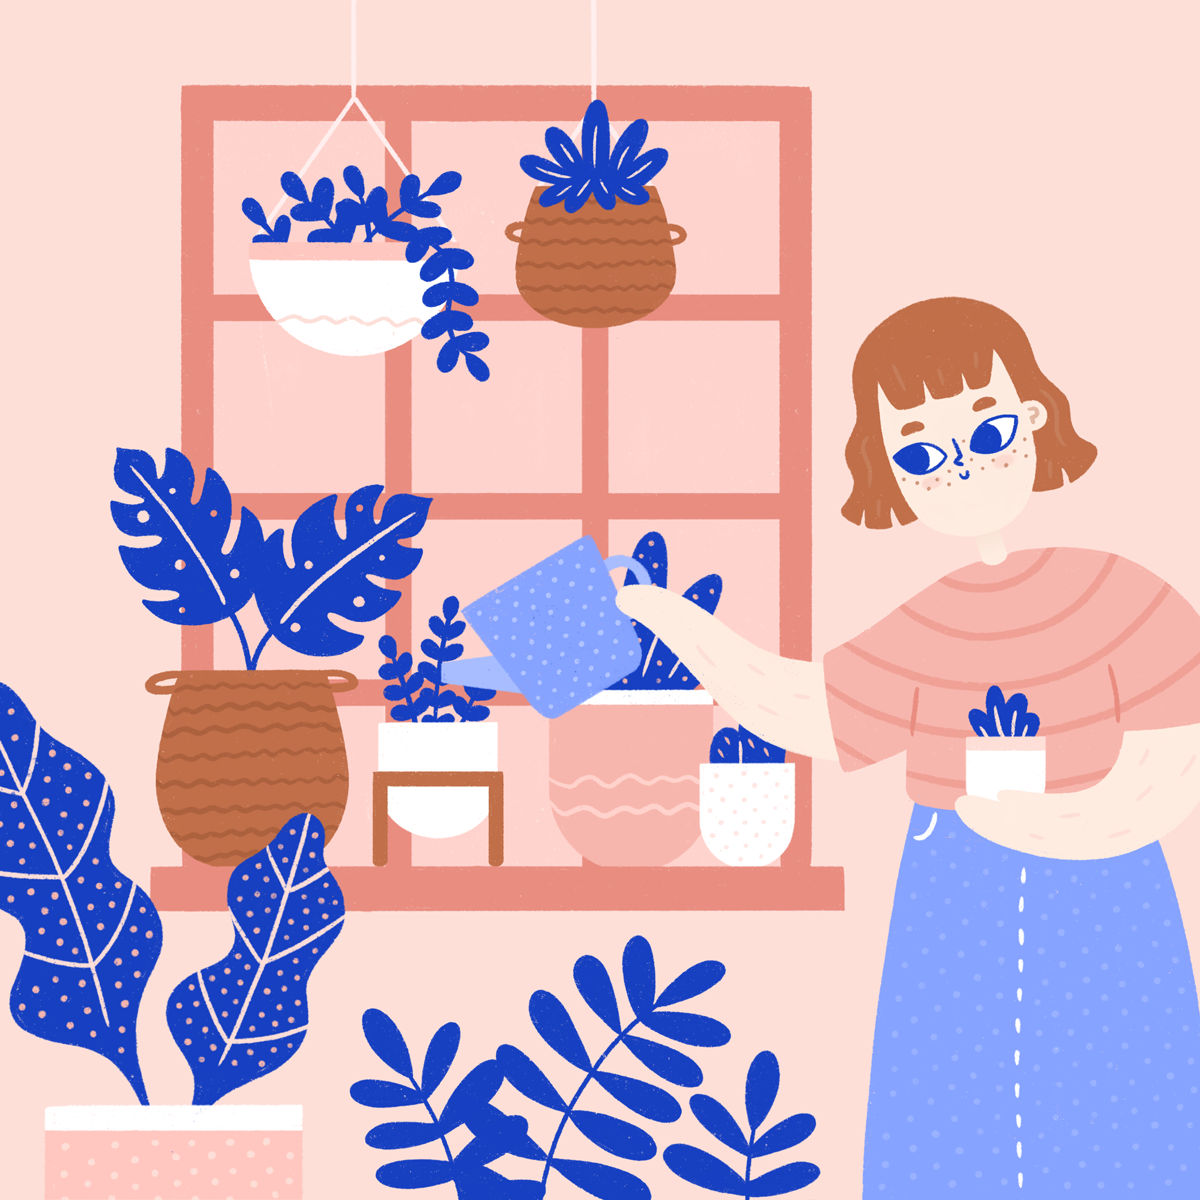 cad_illustration_plantlady.png